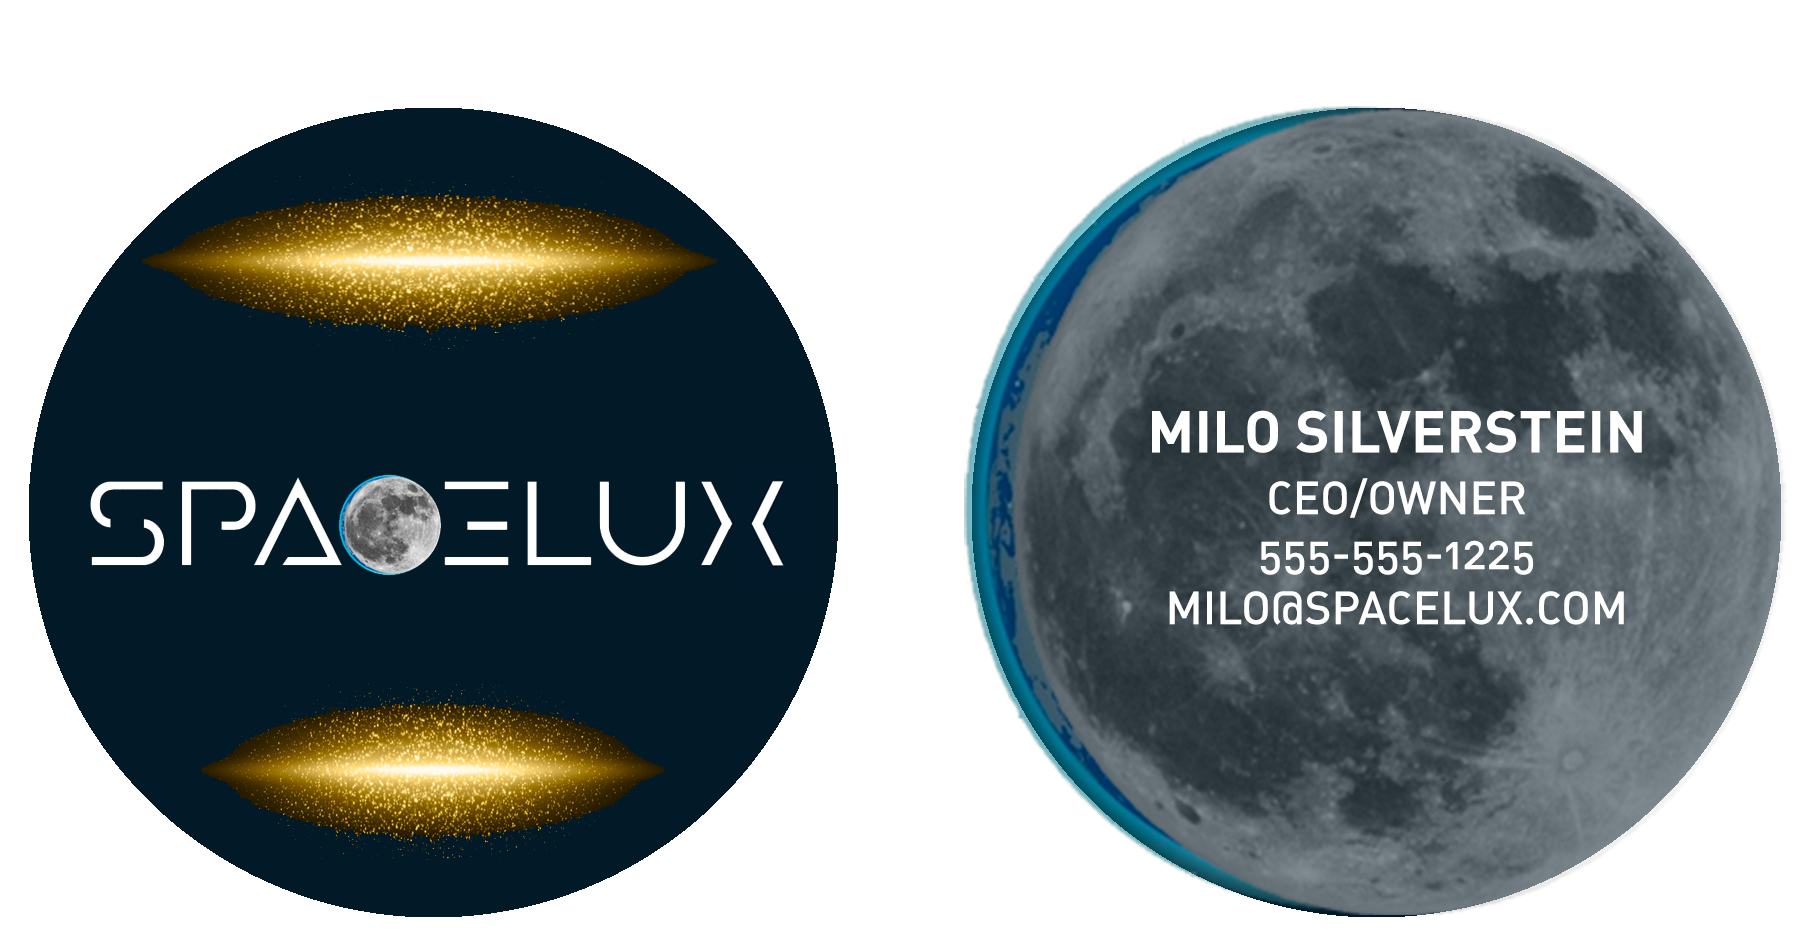 Spacelux business Card